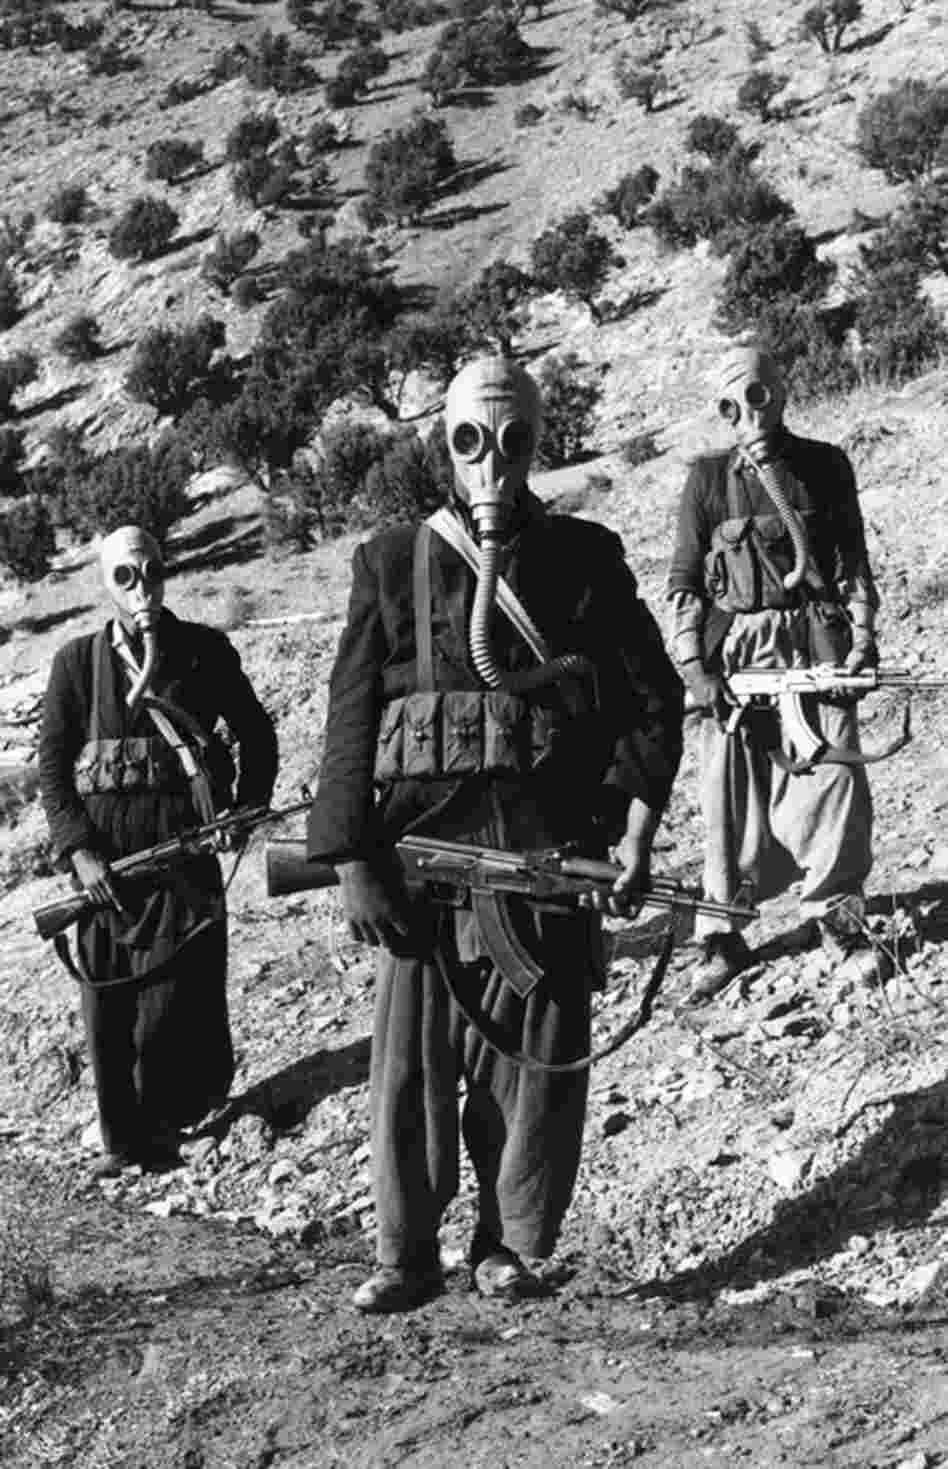 Members of the Mojahedin, rebel Muslim tribe, wearing Russian breathing apparatus for use in chemical warfare, Afghanistan, 1981. Russia claimed that it had been invited by the government for support.